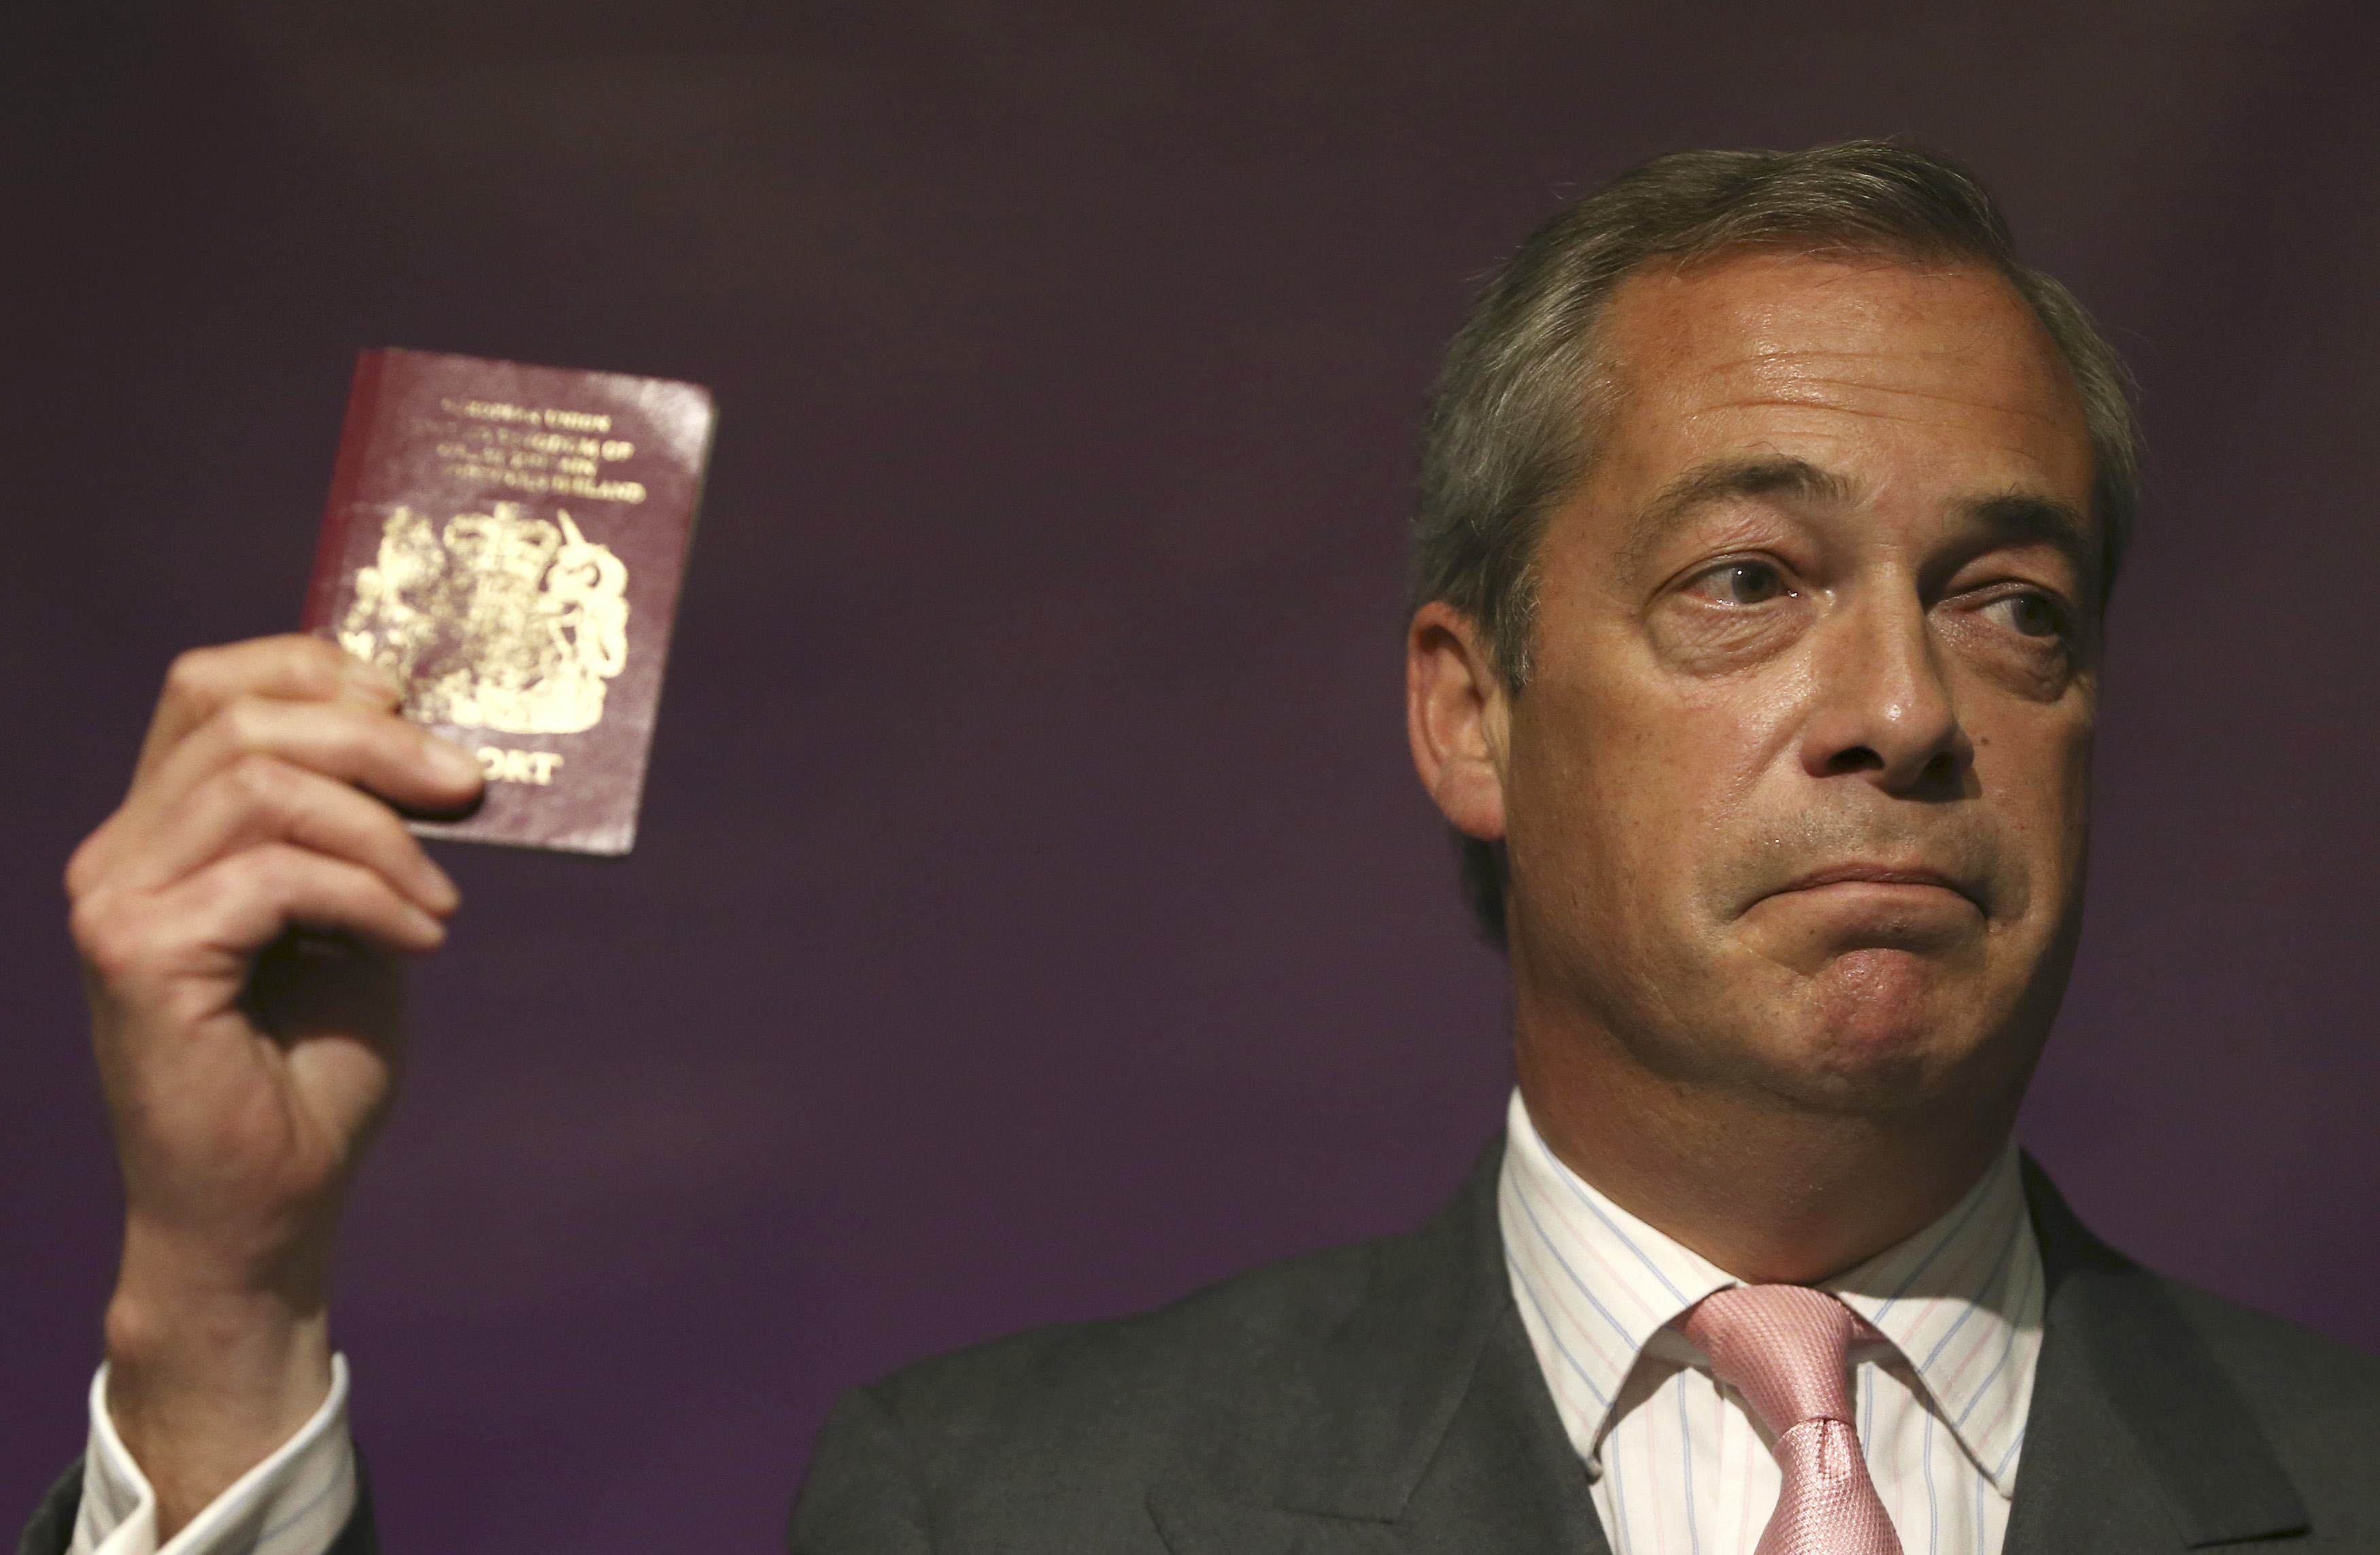 Leader Of The Uk Independence Party Nigel Farage Holds His Passport As He  Speaks At A Probrexit Event In London On June 3